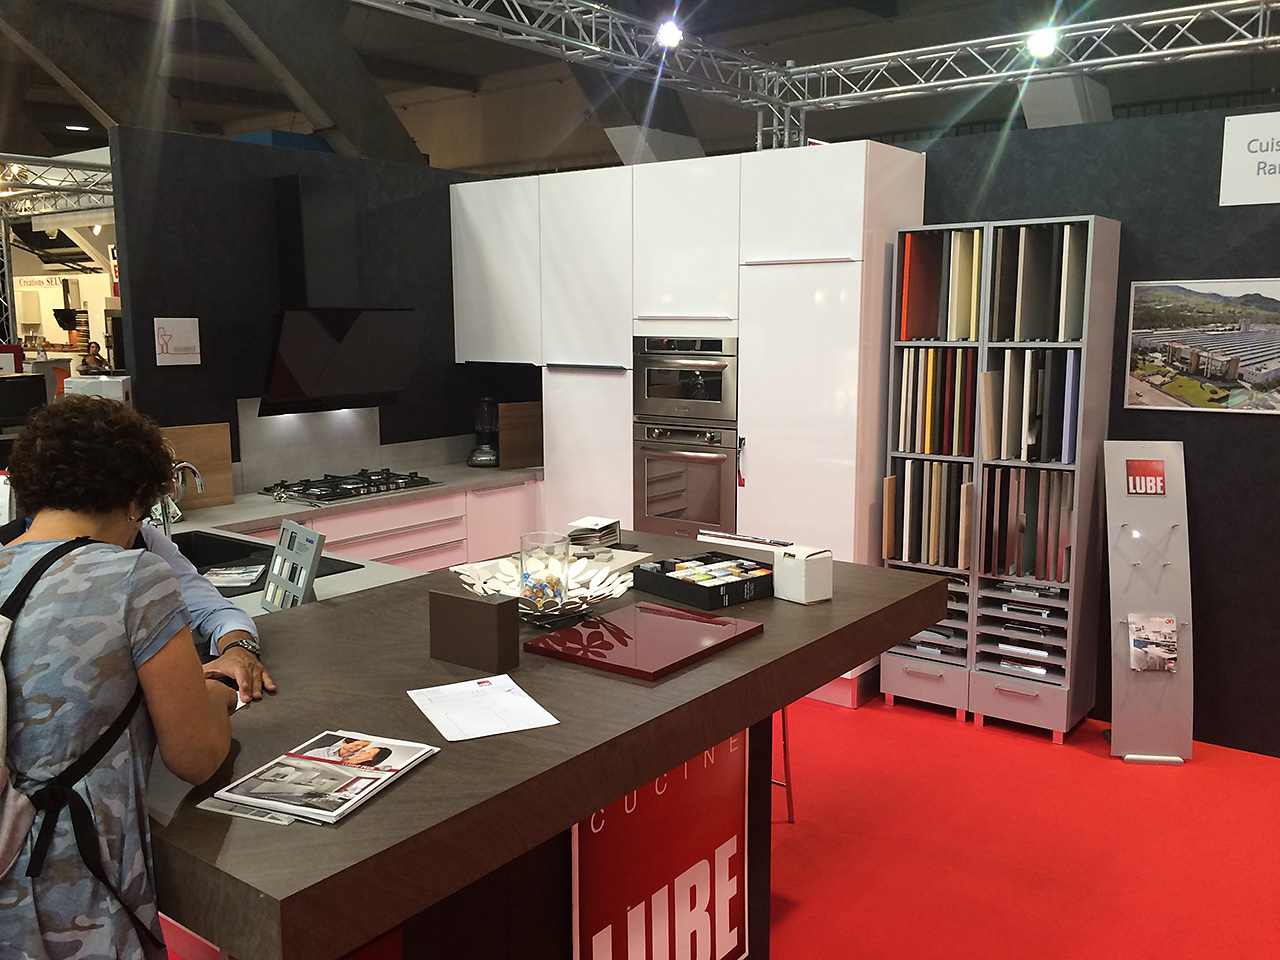 Salon Habitat Strasbourg France Cucine Lube On Display At The Salon De L Habitat In